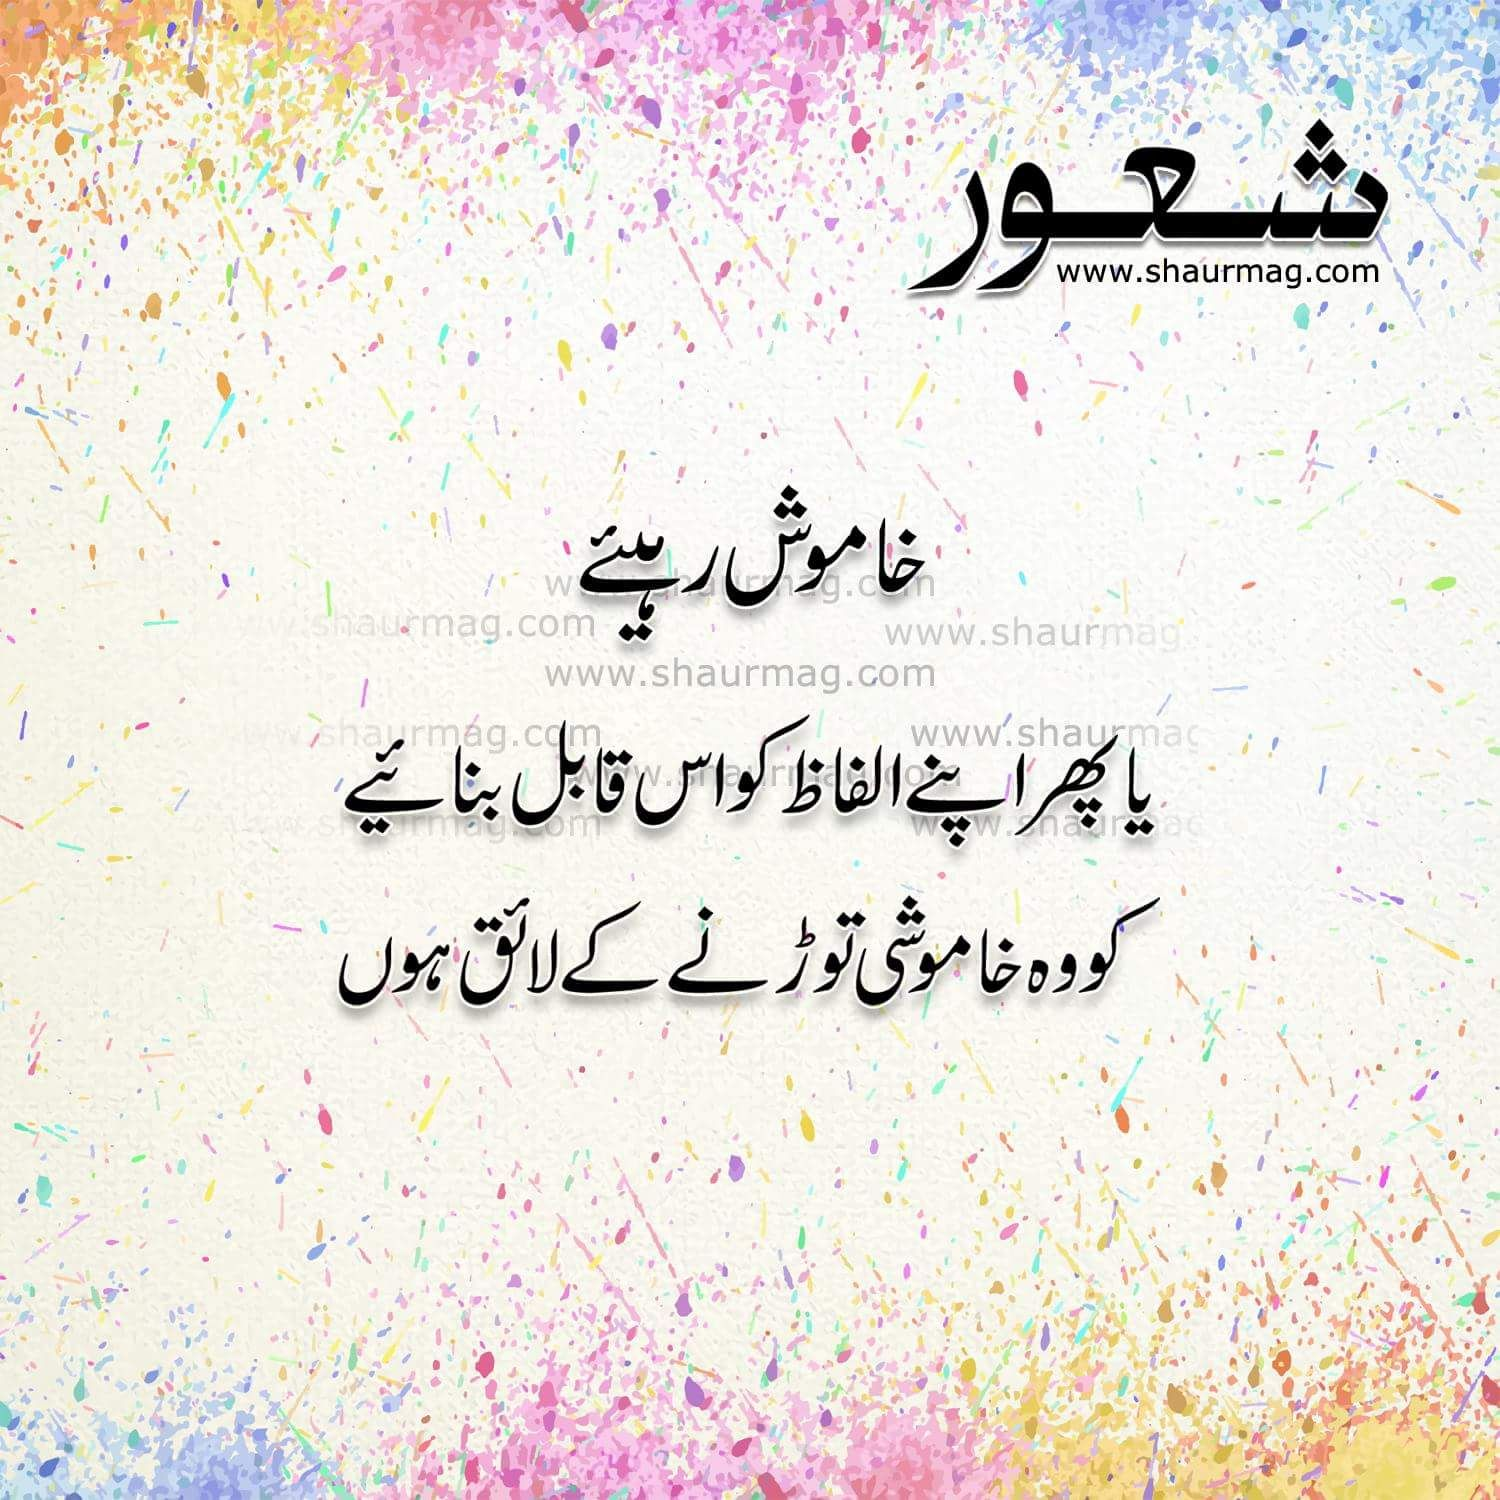 Pin by Sohail Ahmad on =شعر=شعور=۔۔۔۔۔ Urdu quotes, K